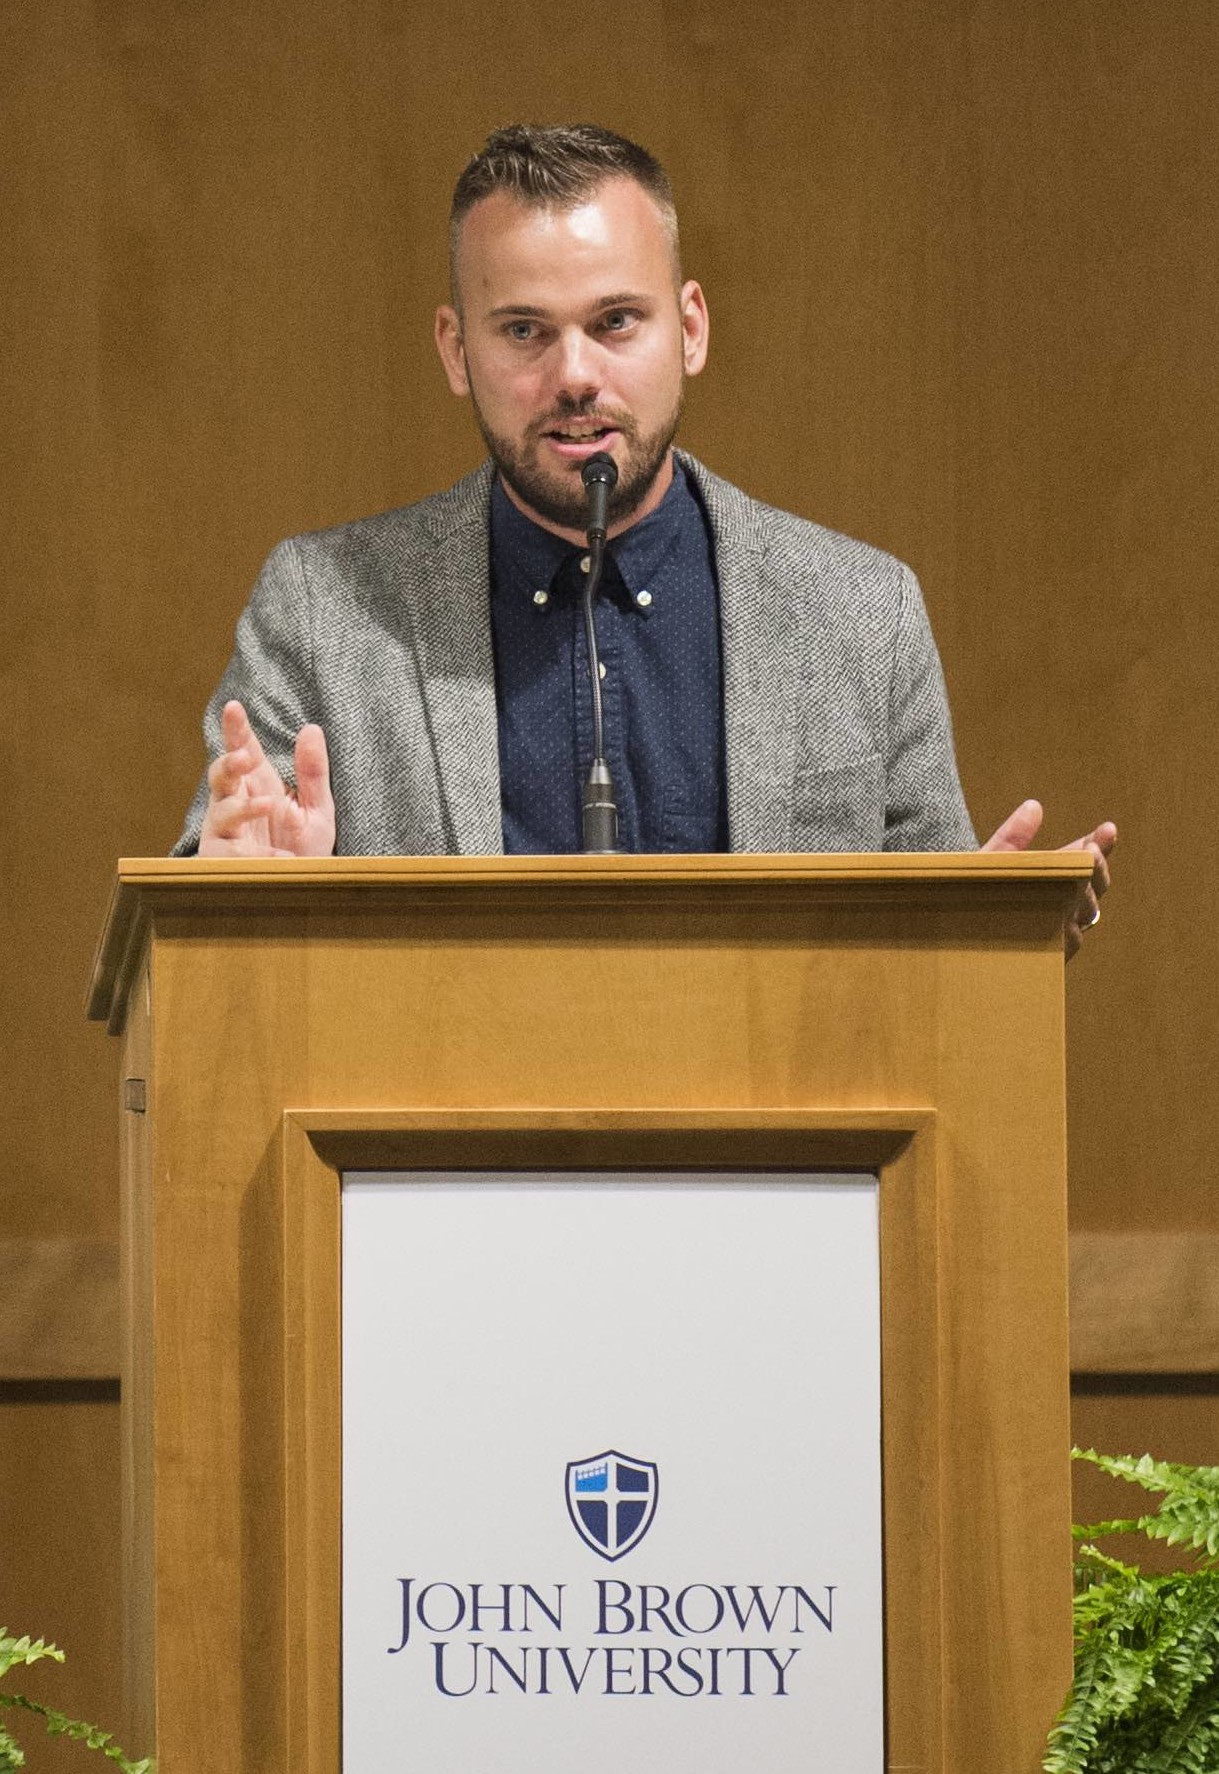 Benjamin Rasmussen gives a speech as he accepts JBU's Young Eagle Award at a special event during Homecoming. Rasmussen has been featured on Vogue, Business Week, Fortune Magazine and New York Times.